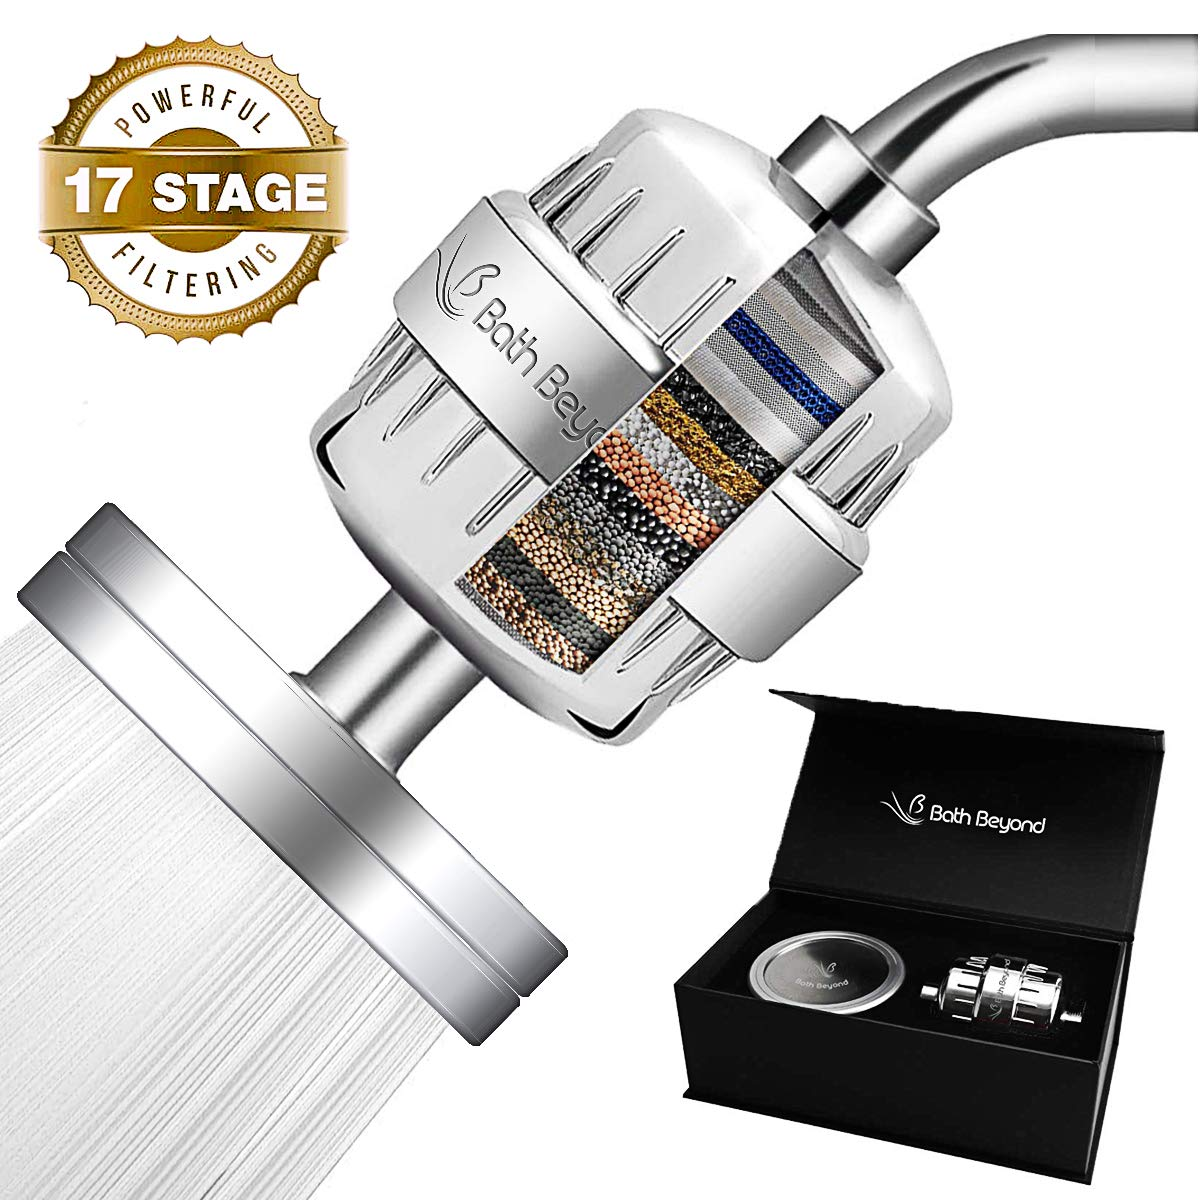 BathBeyond Filtered Shower Head Set 17 Stage Vitamin C Shower Filter For Hard Water Removes Chlorine Fluoride and Improves The Condition of Your Skin, Hair-High Output Water Filter With cartridge